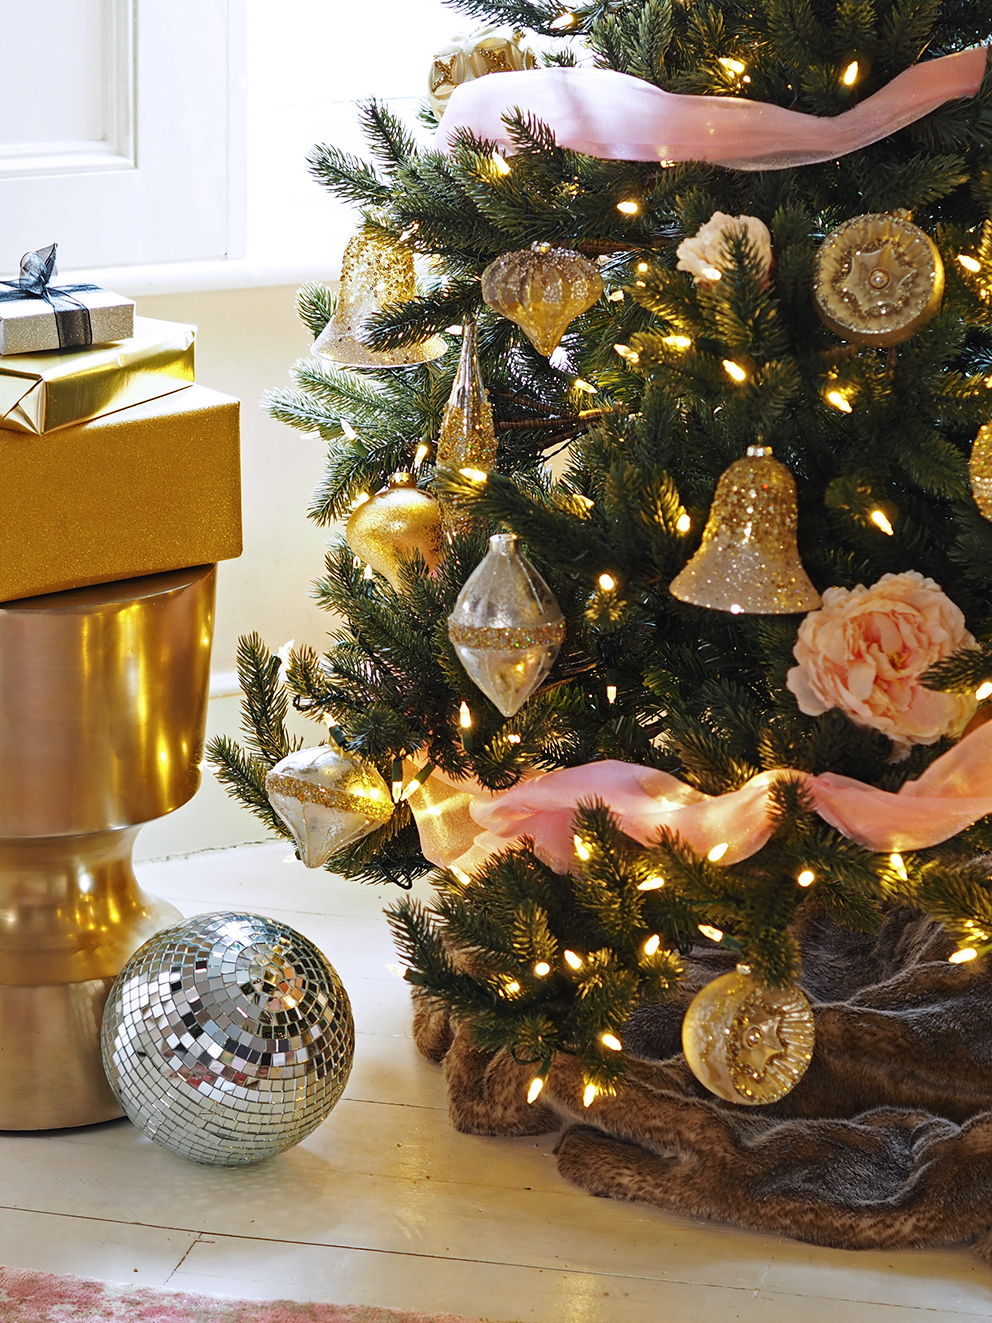 French For Pineapple Blog - Trees & Baubles Balsam Hill Christmas Blog Hop - medium shot of christmas tree with gold glitter baubles and fairy lights with gold and silver wrapped presents.